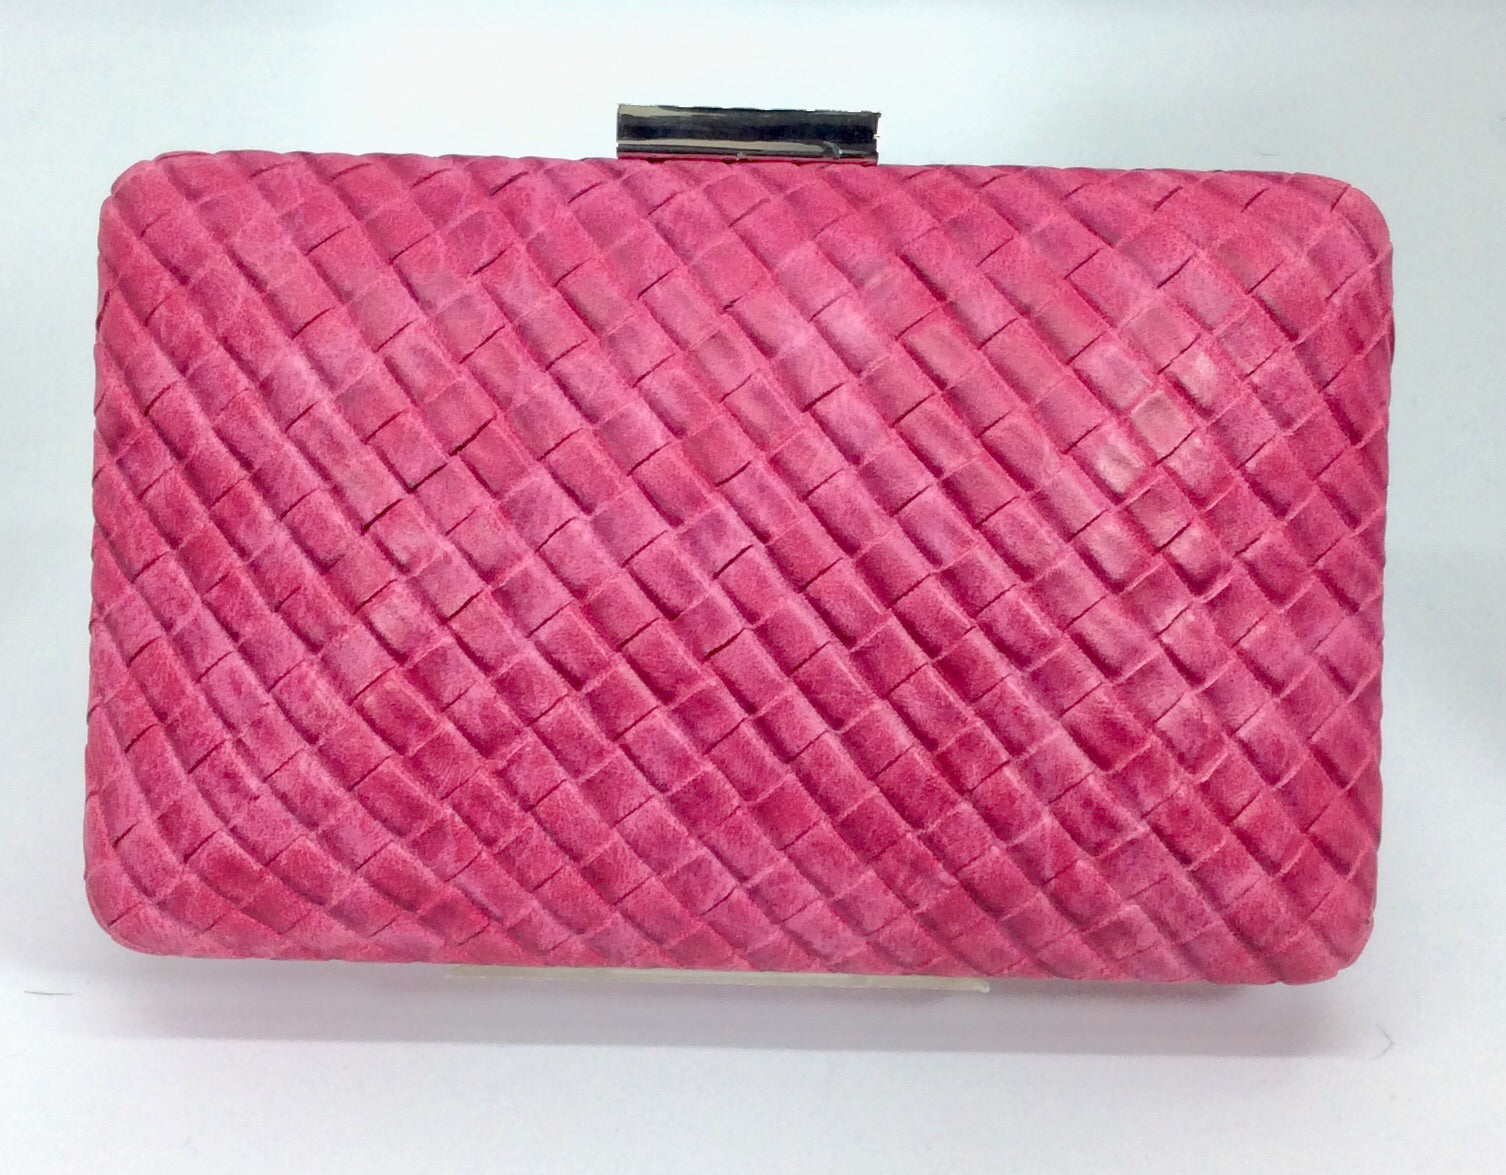 Hot pink plaited design clutch with silver chain